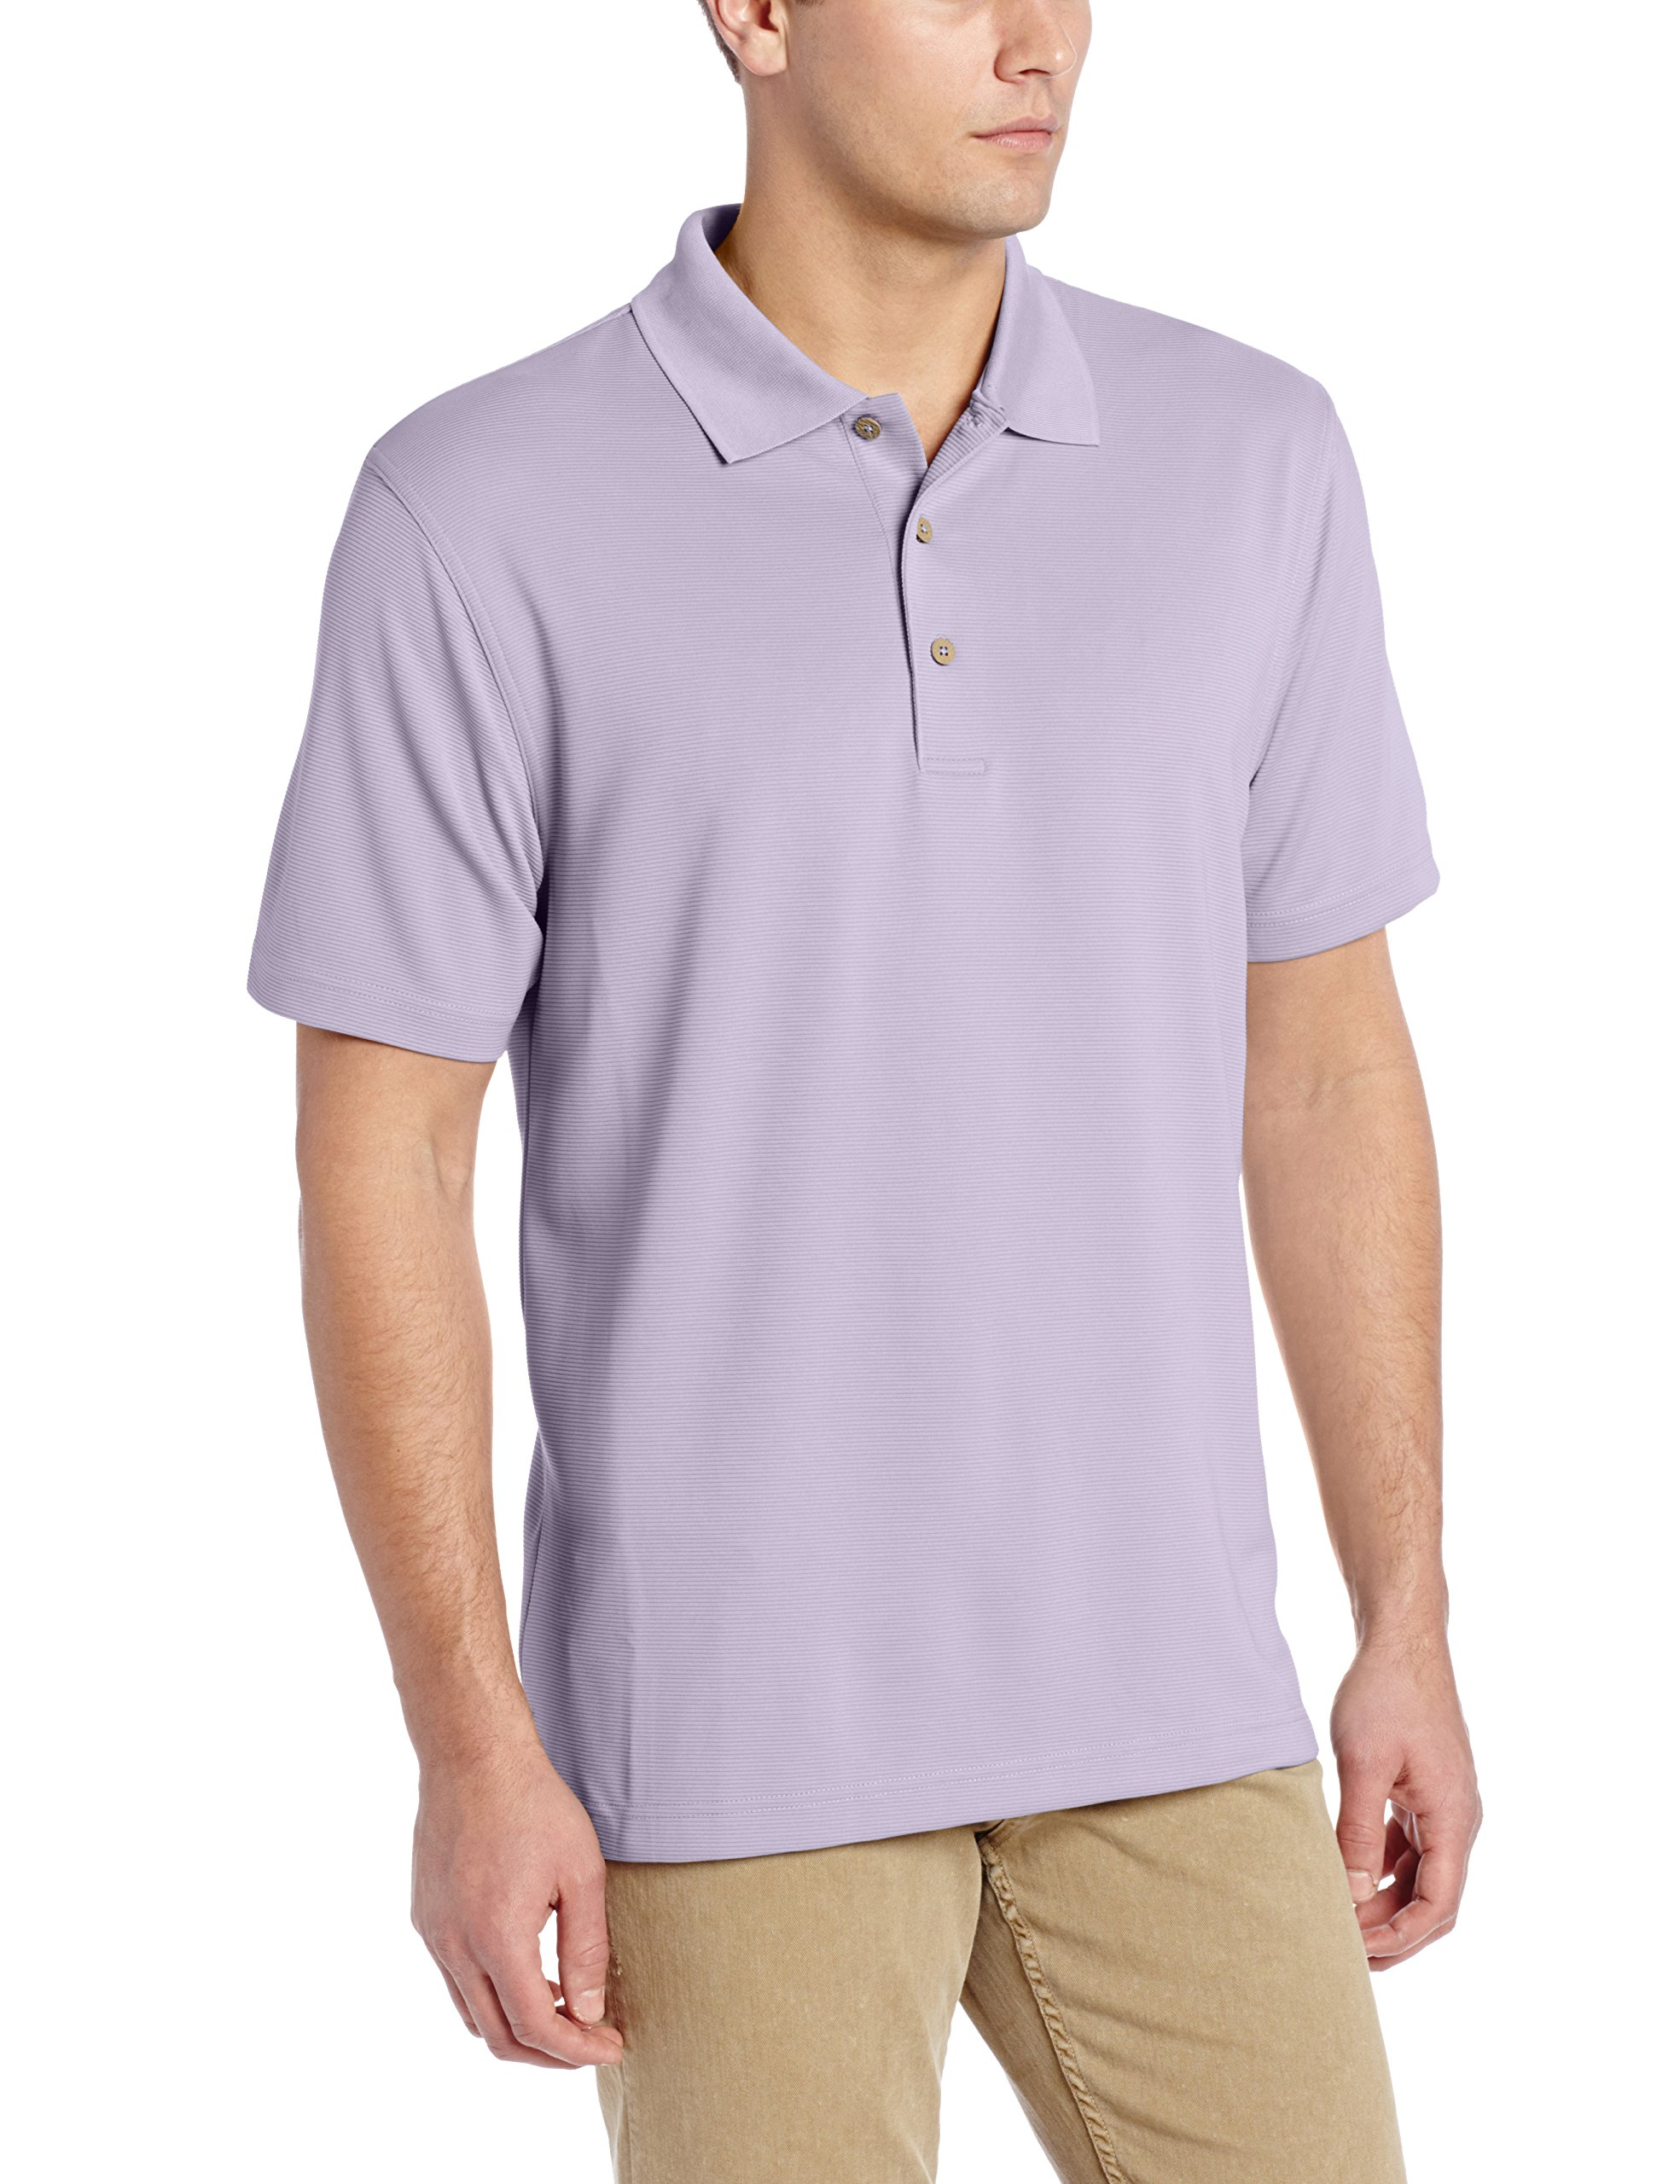 Cubavera Men\u0027s Essential Textured Performance Polo Shirt, Heirloom Lilac,  Large product image